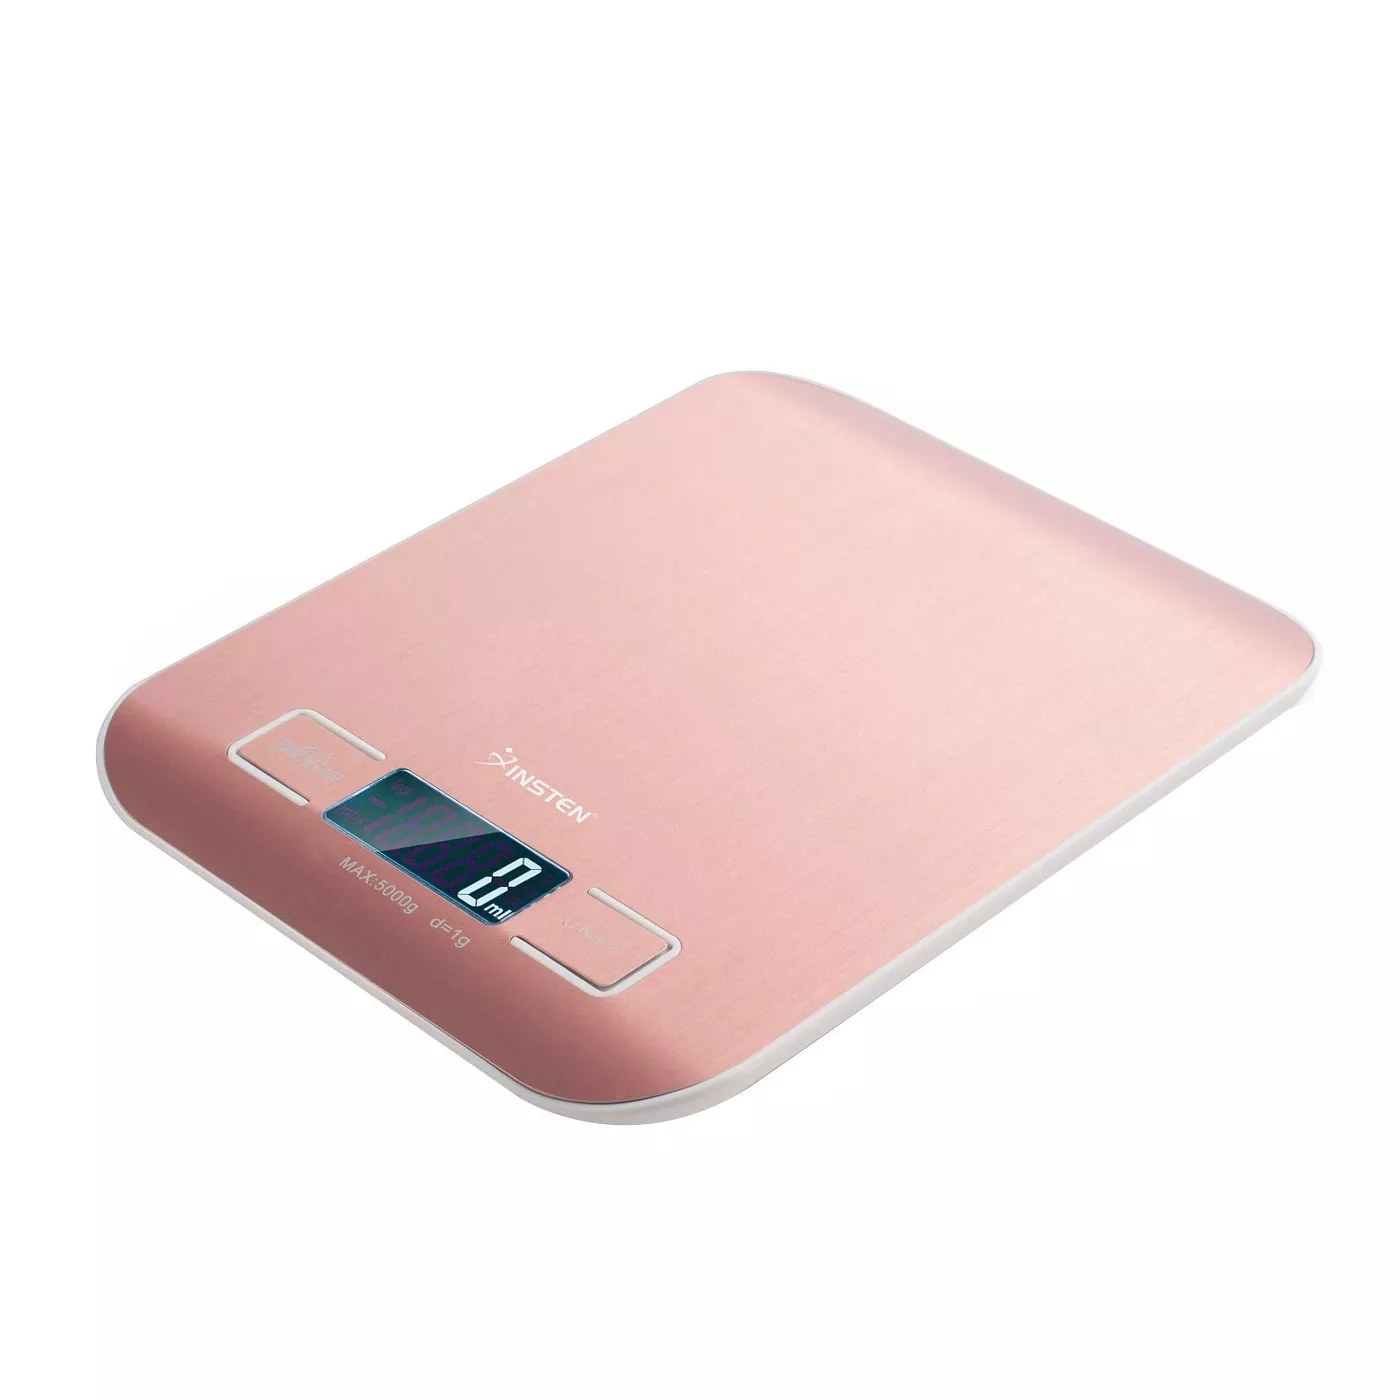 The rose kitchen scale